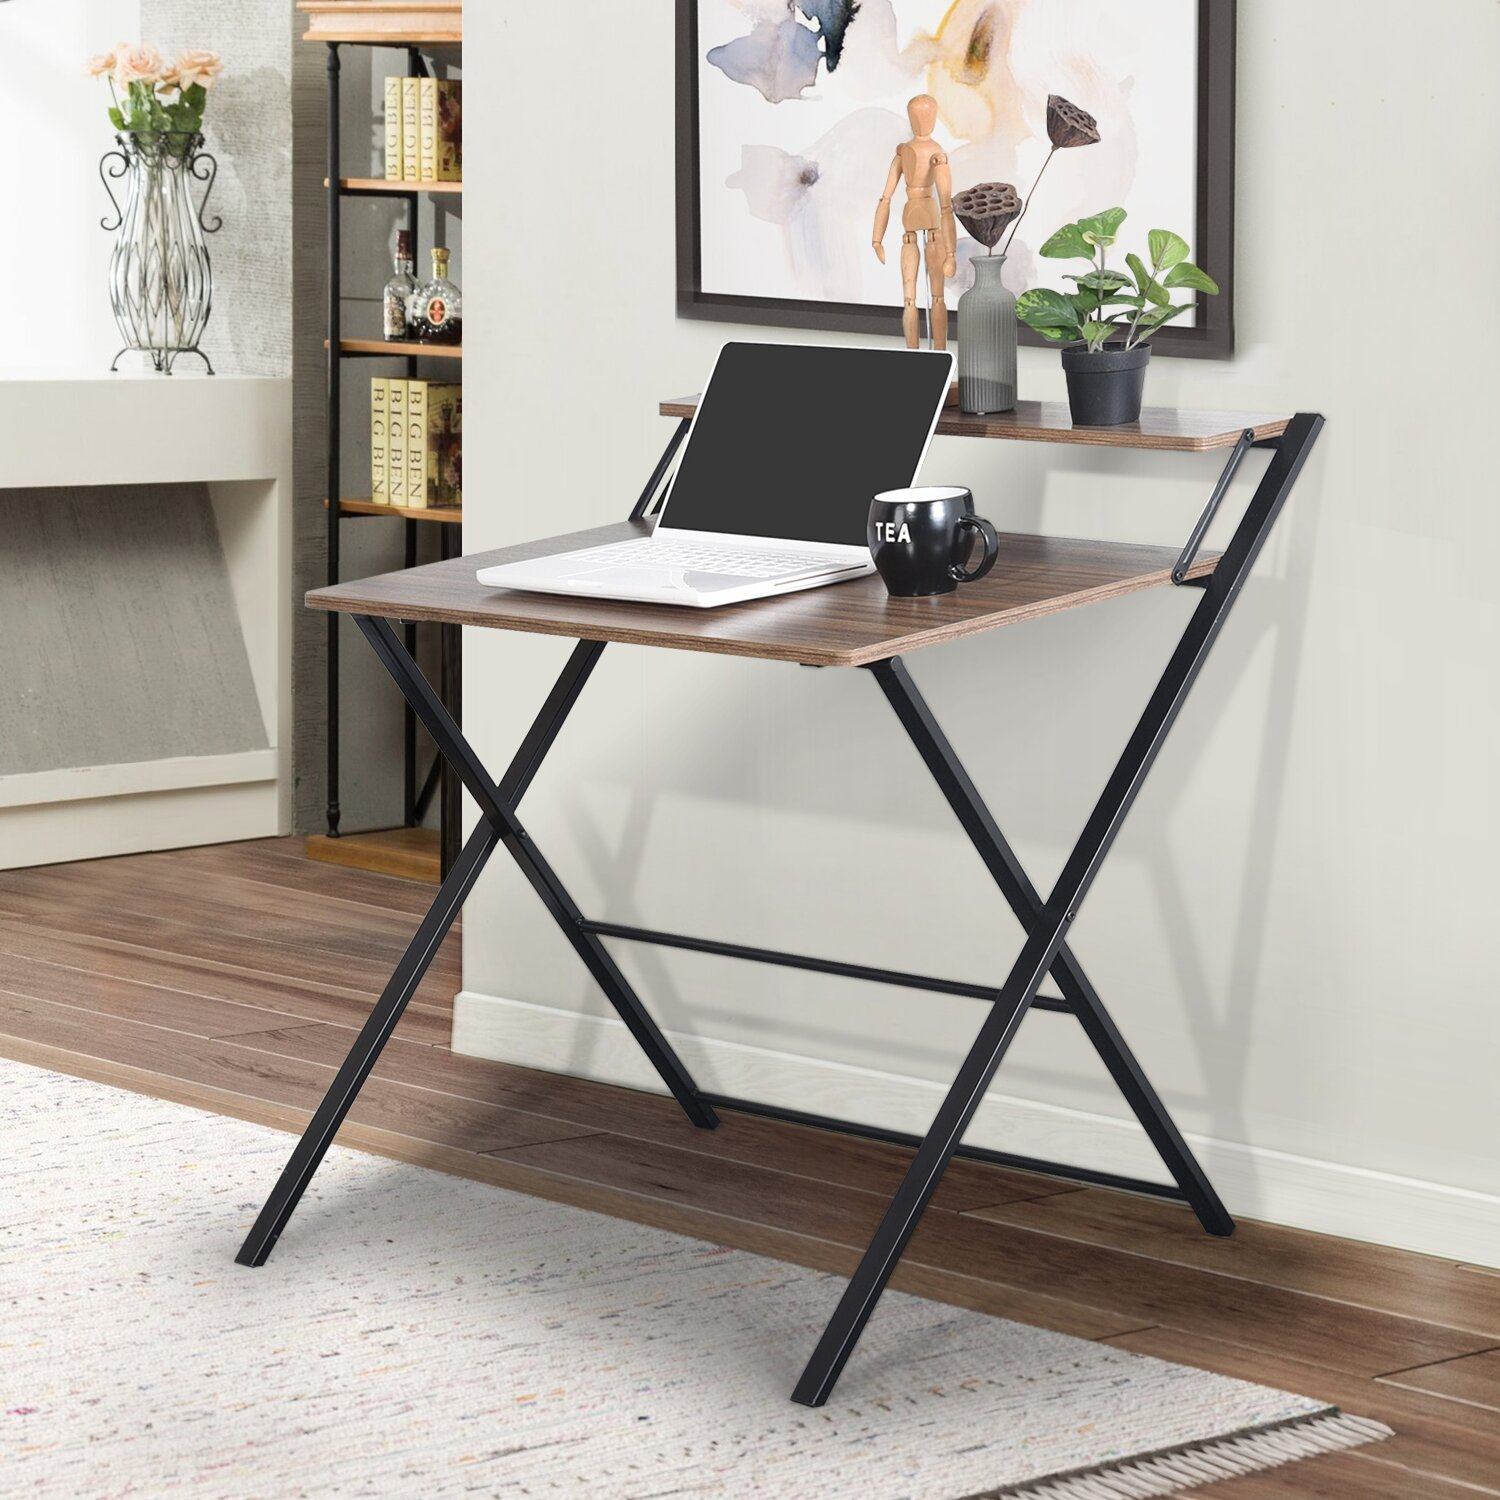 Image of: 17 Stories Folding Computer Desk With Shelf Home Office Small Desk With Metal Frame Modern Simple Laptop Table Study Desk Wayfair Ca